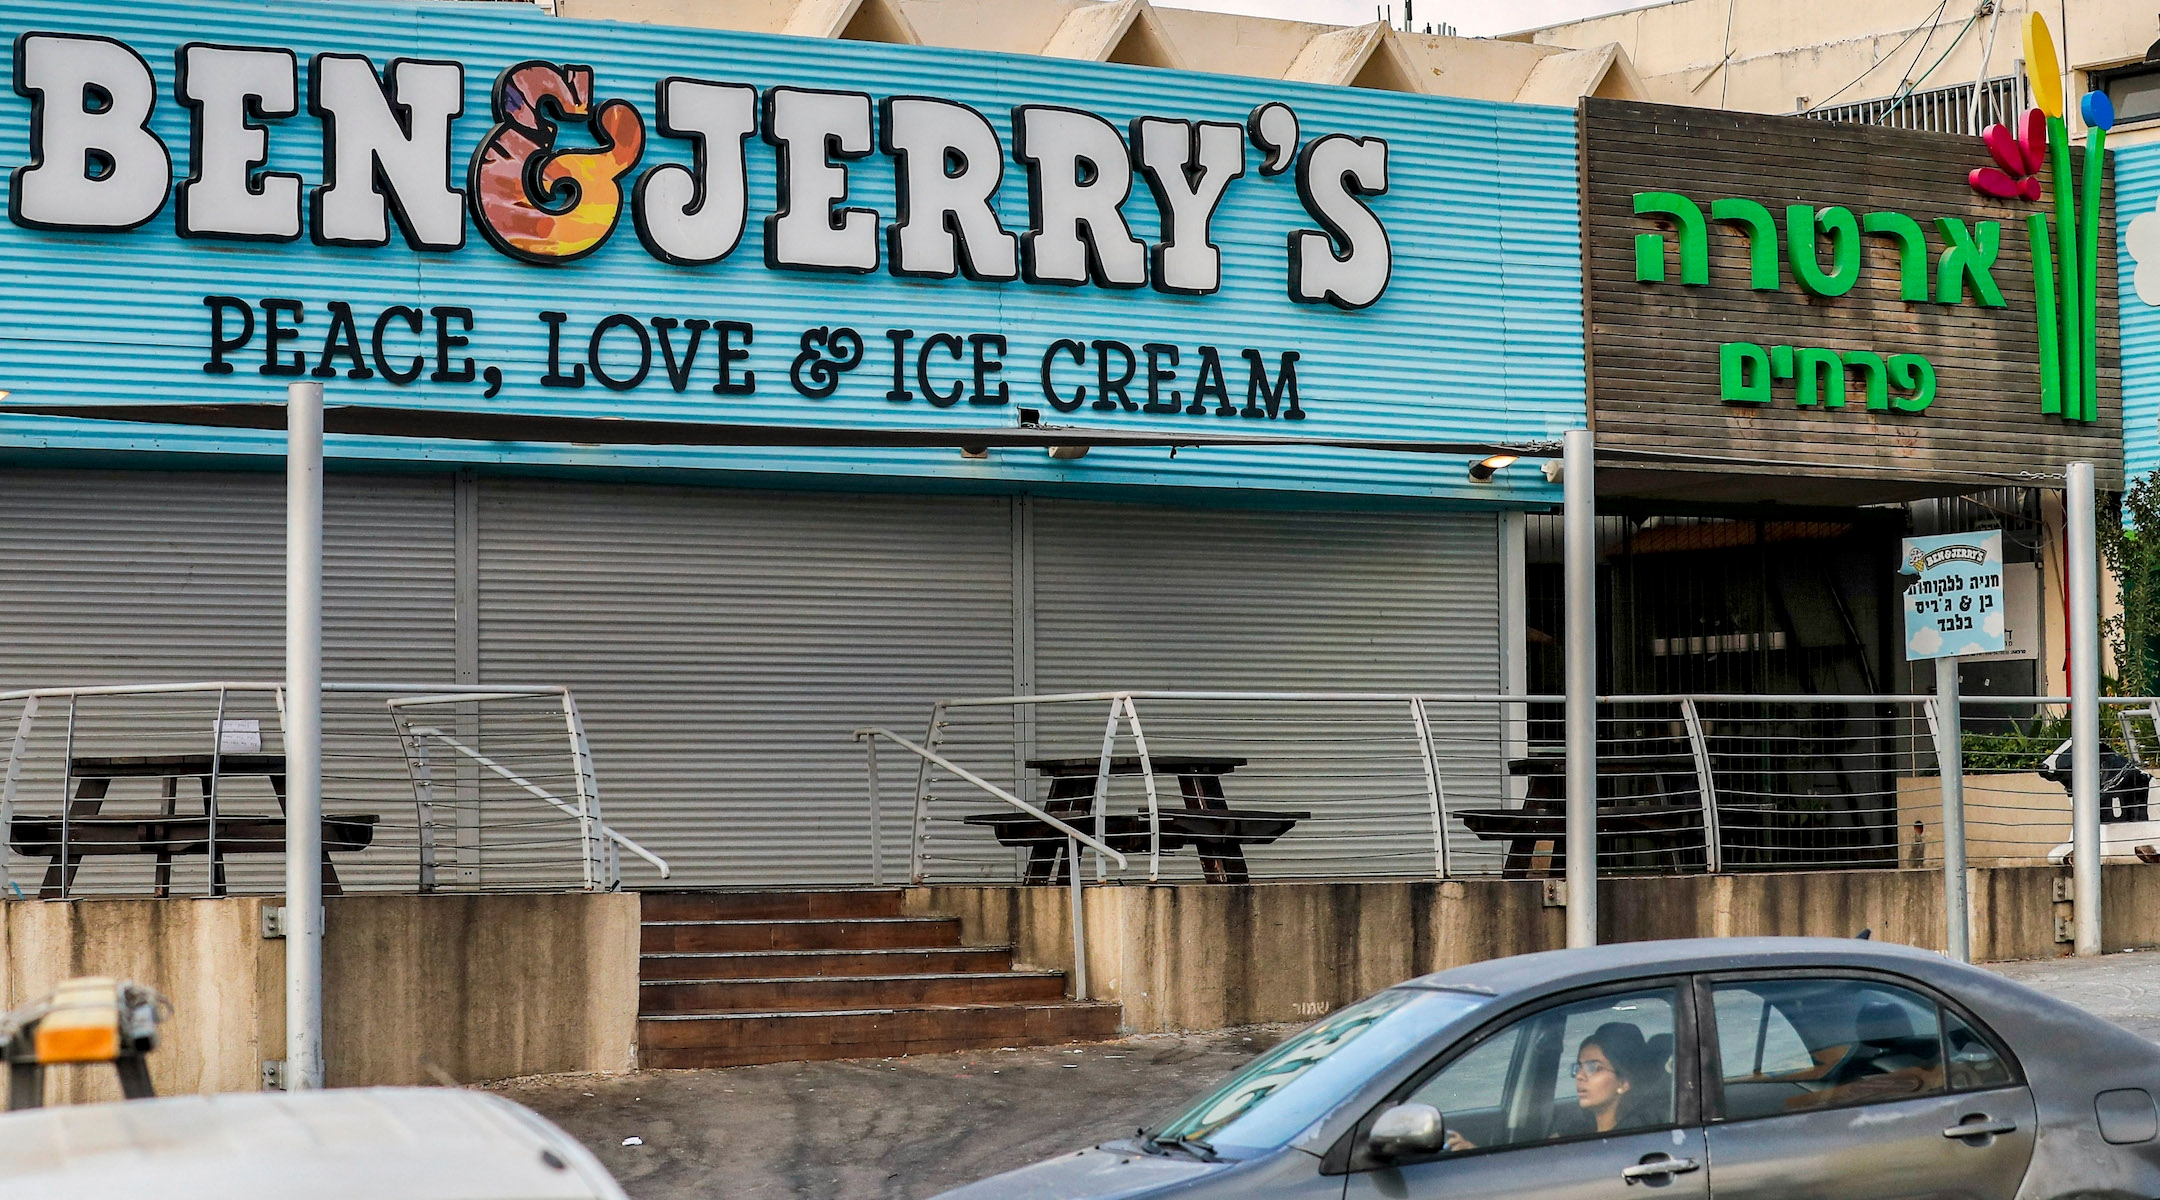 5 states are considering sanctions on Ben & Jerry's after West Bank pullout